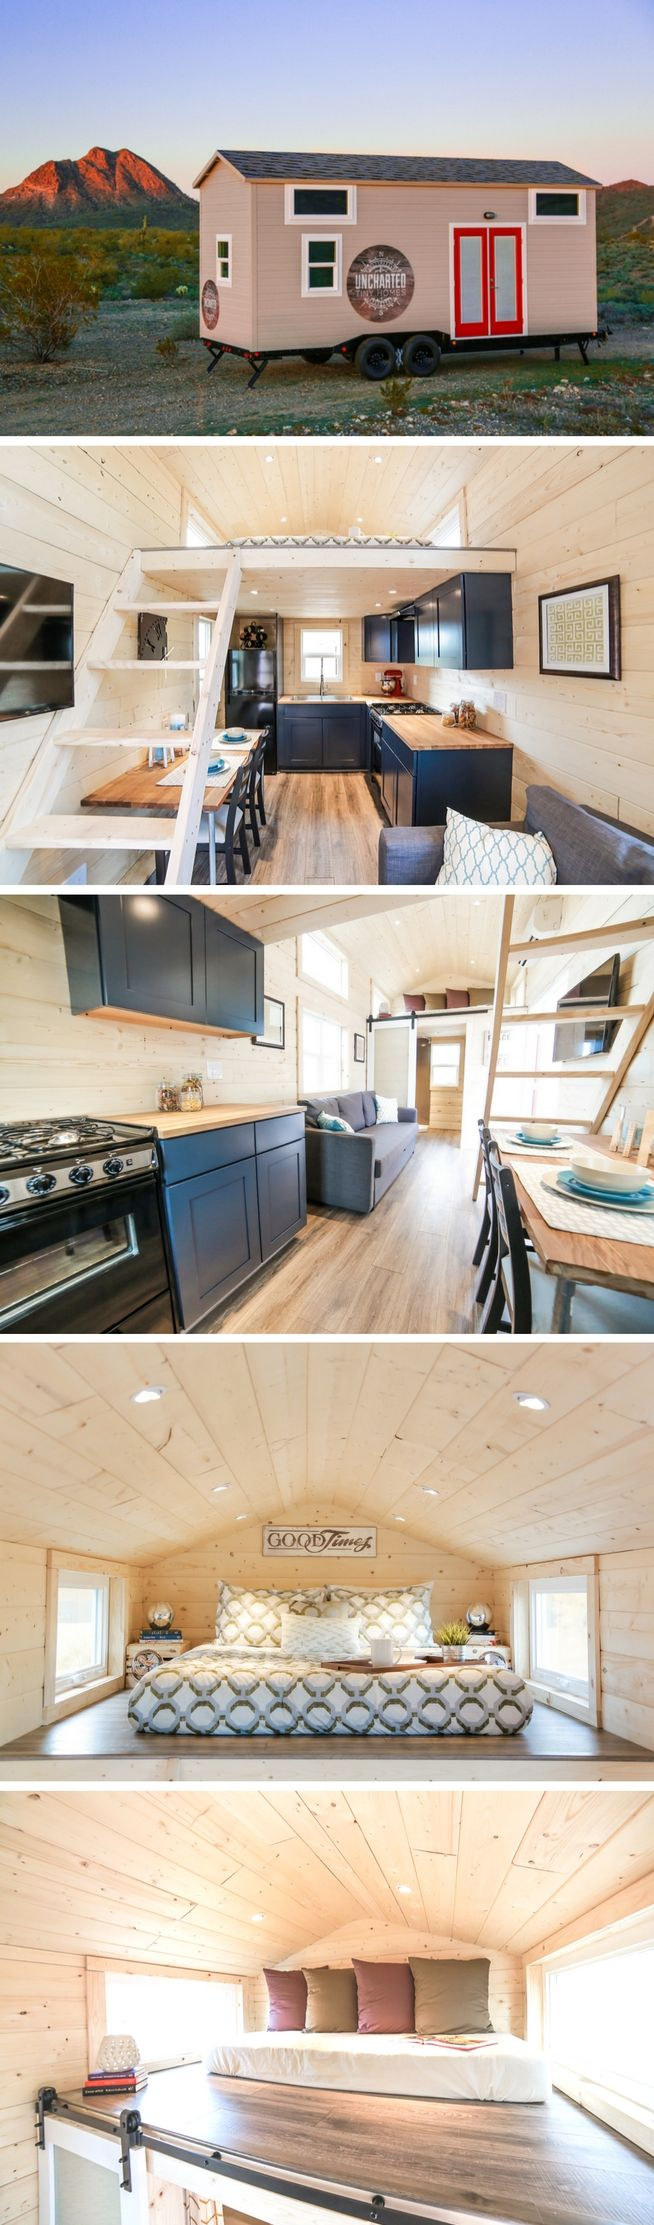 The Mansion, a beautiful 270 sq ft tiny house on wheels